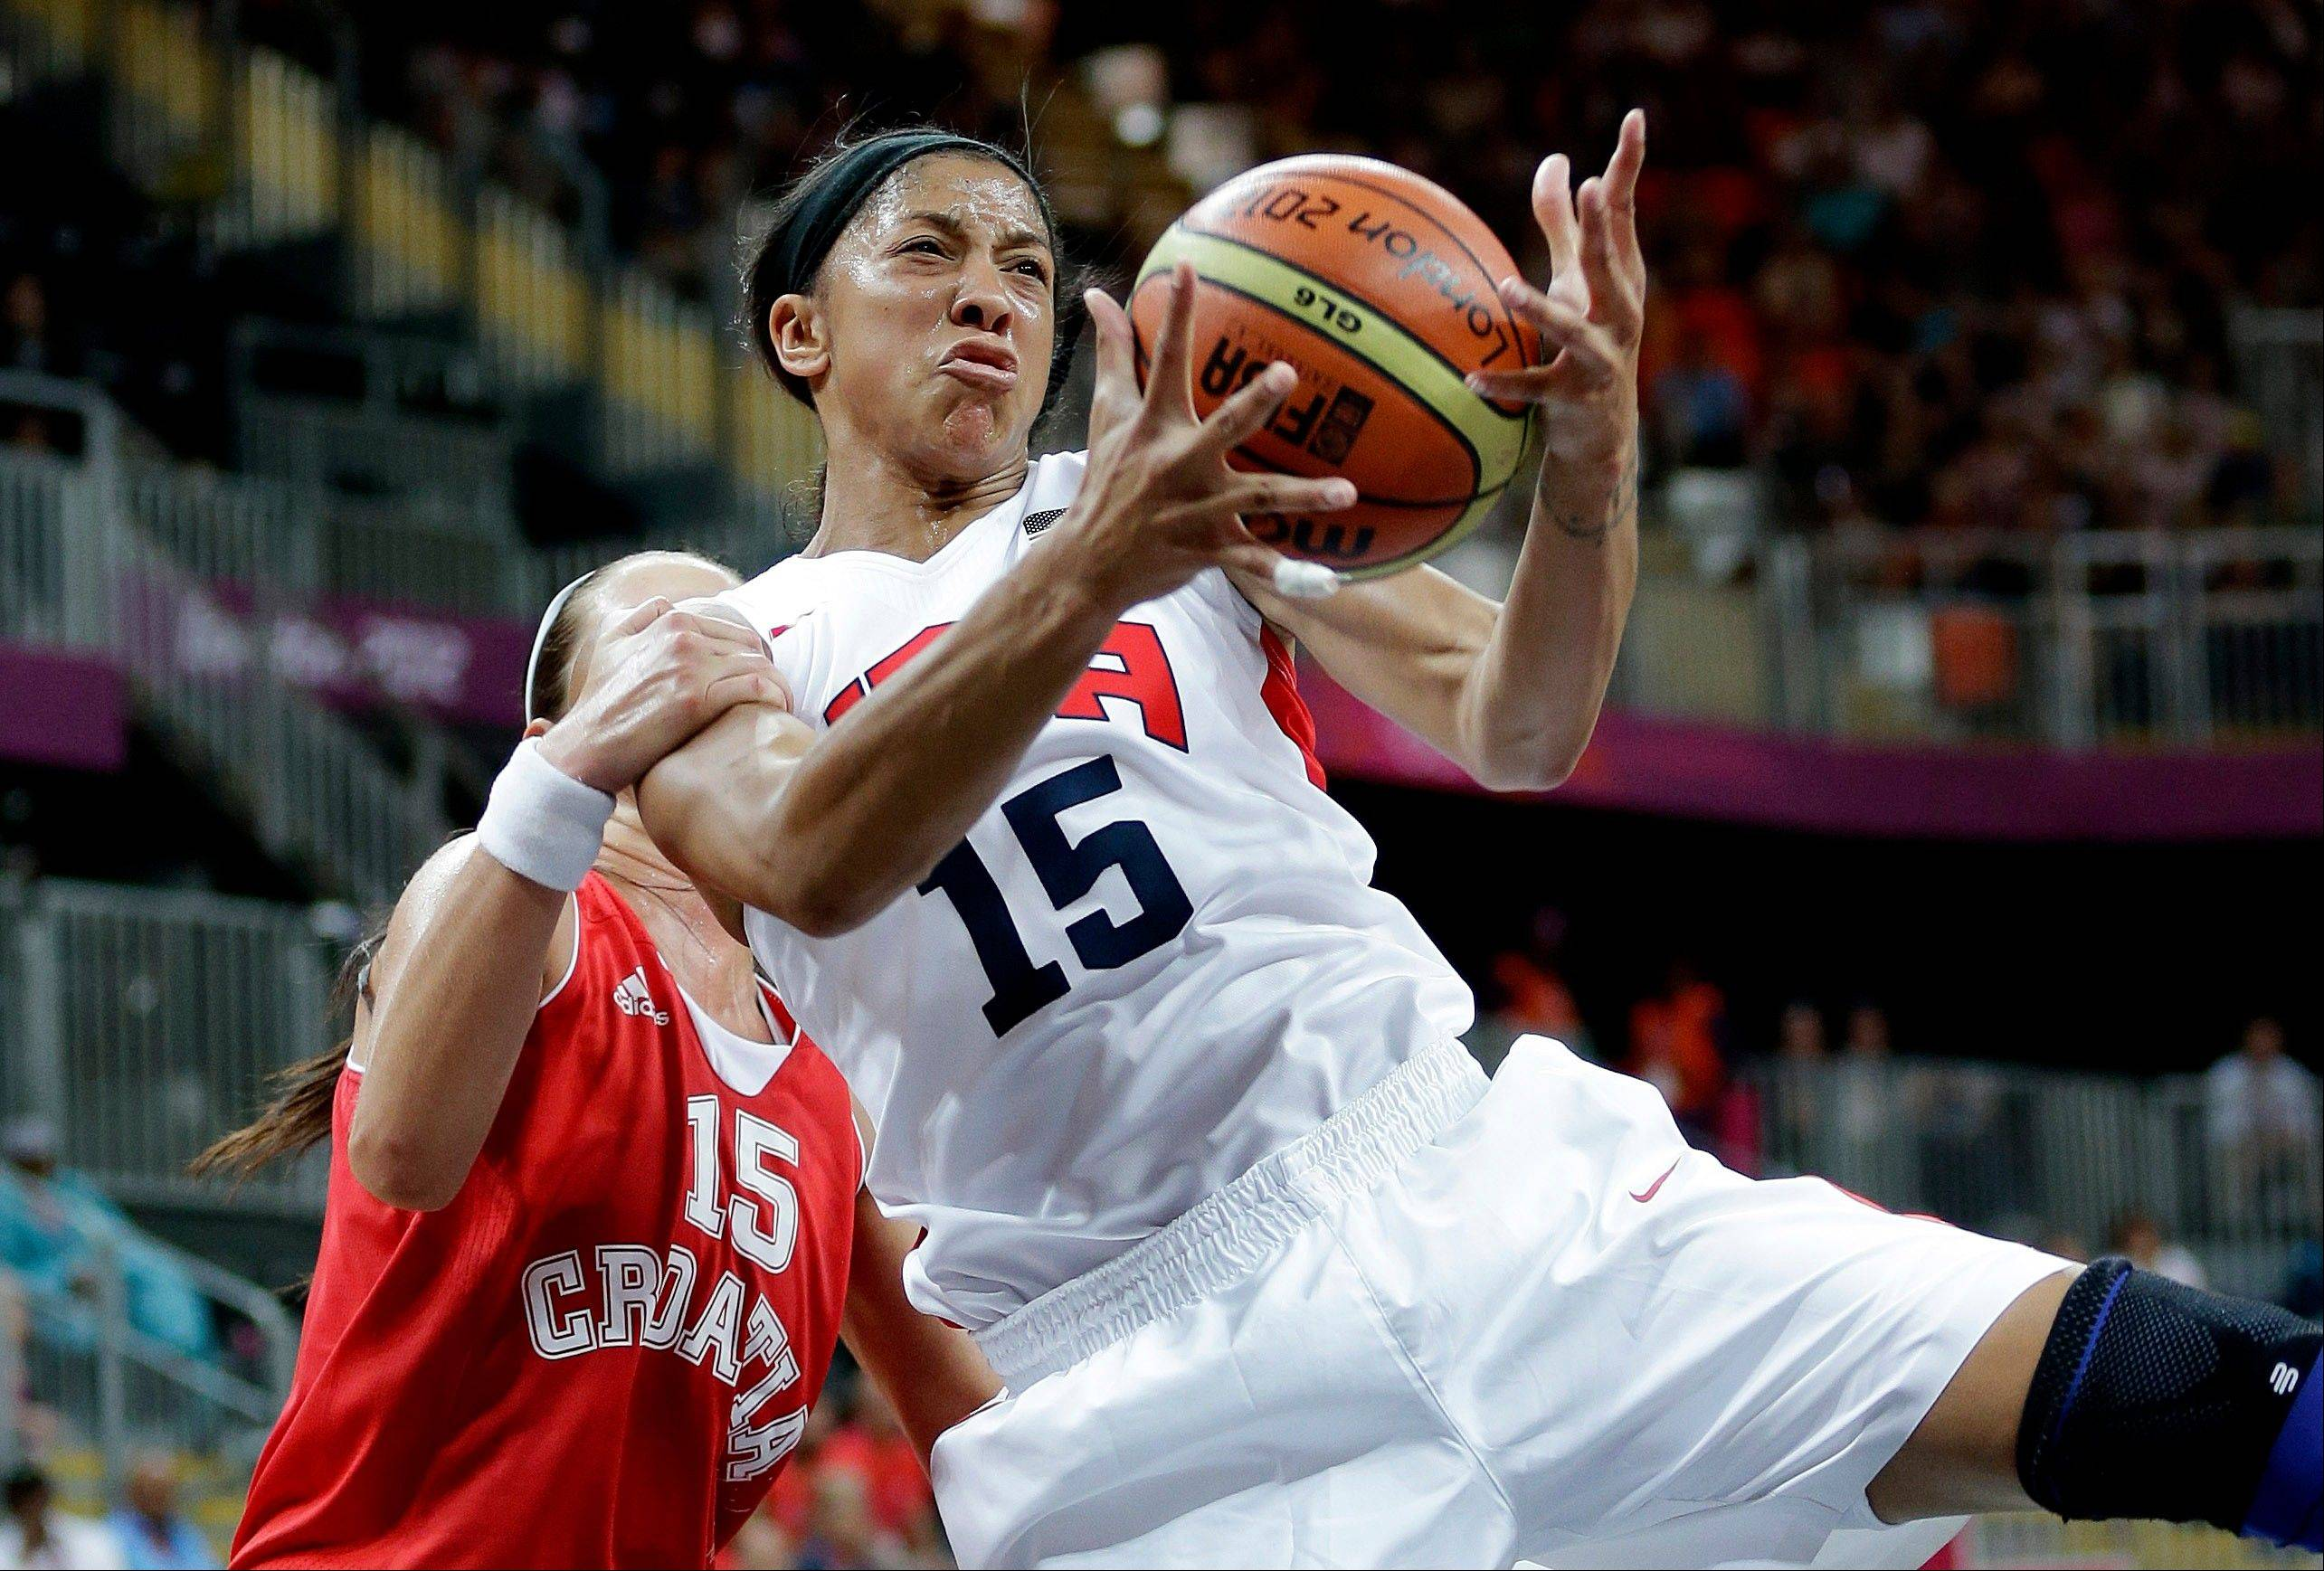 USA�s Candace Parker, right, is grabbed from behind by Croatia�s Jelena Ivezic during the second half of a preliminary women�s basketball game Saturday at the London Olympics.